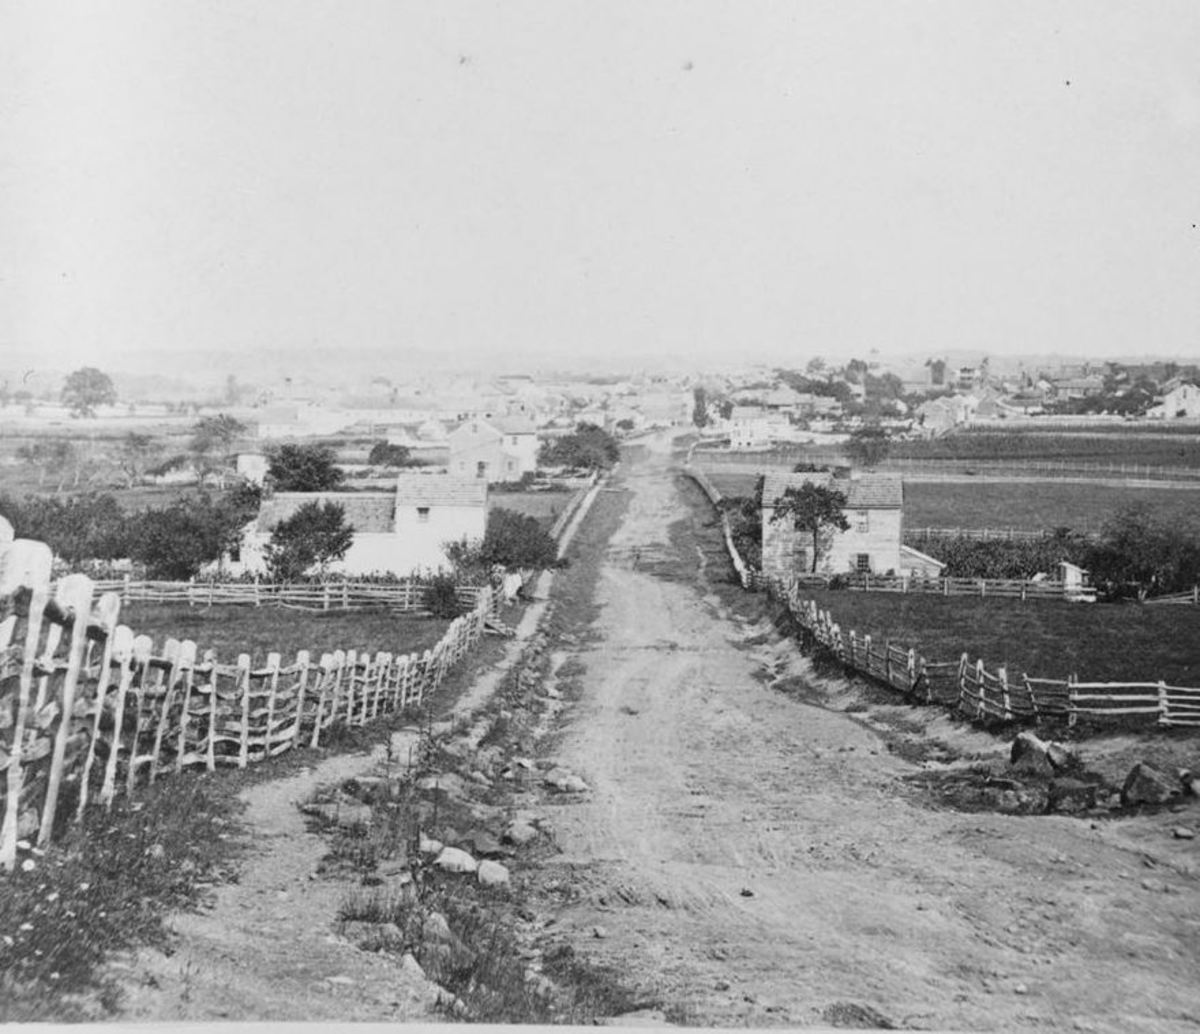 Gettysburg in 1863, north of town, viewed from the area of the Lutheran Theological Seminary